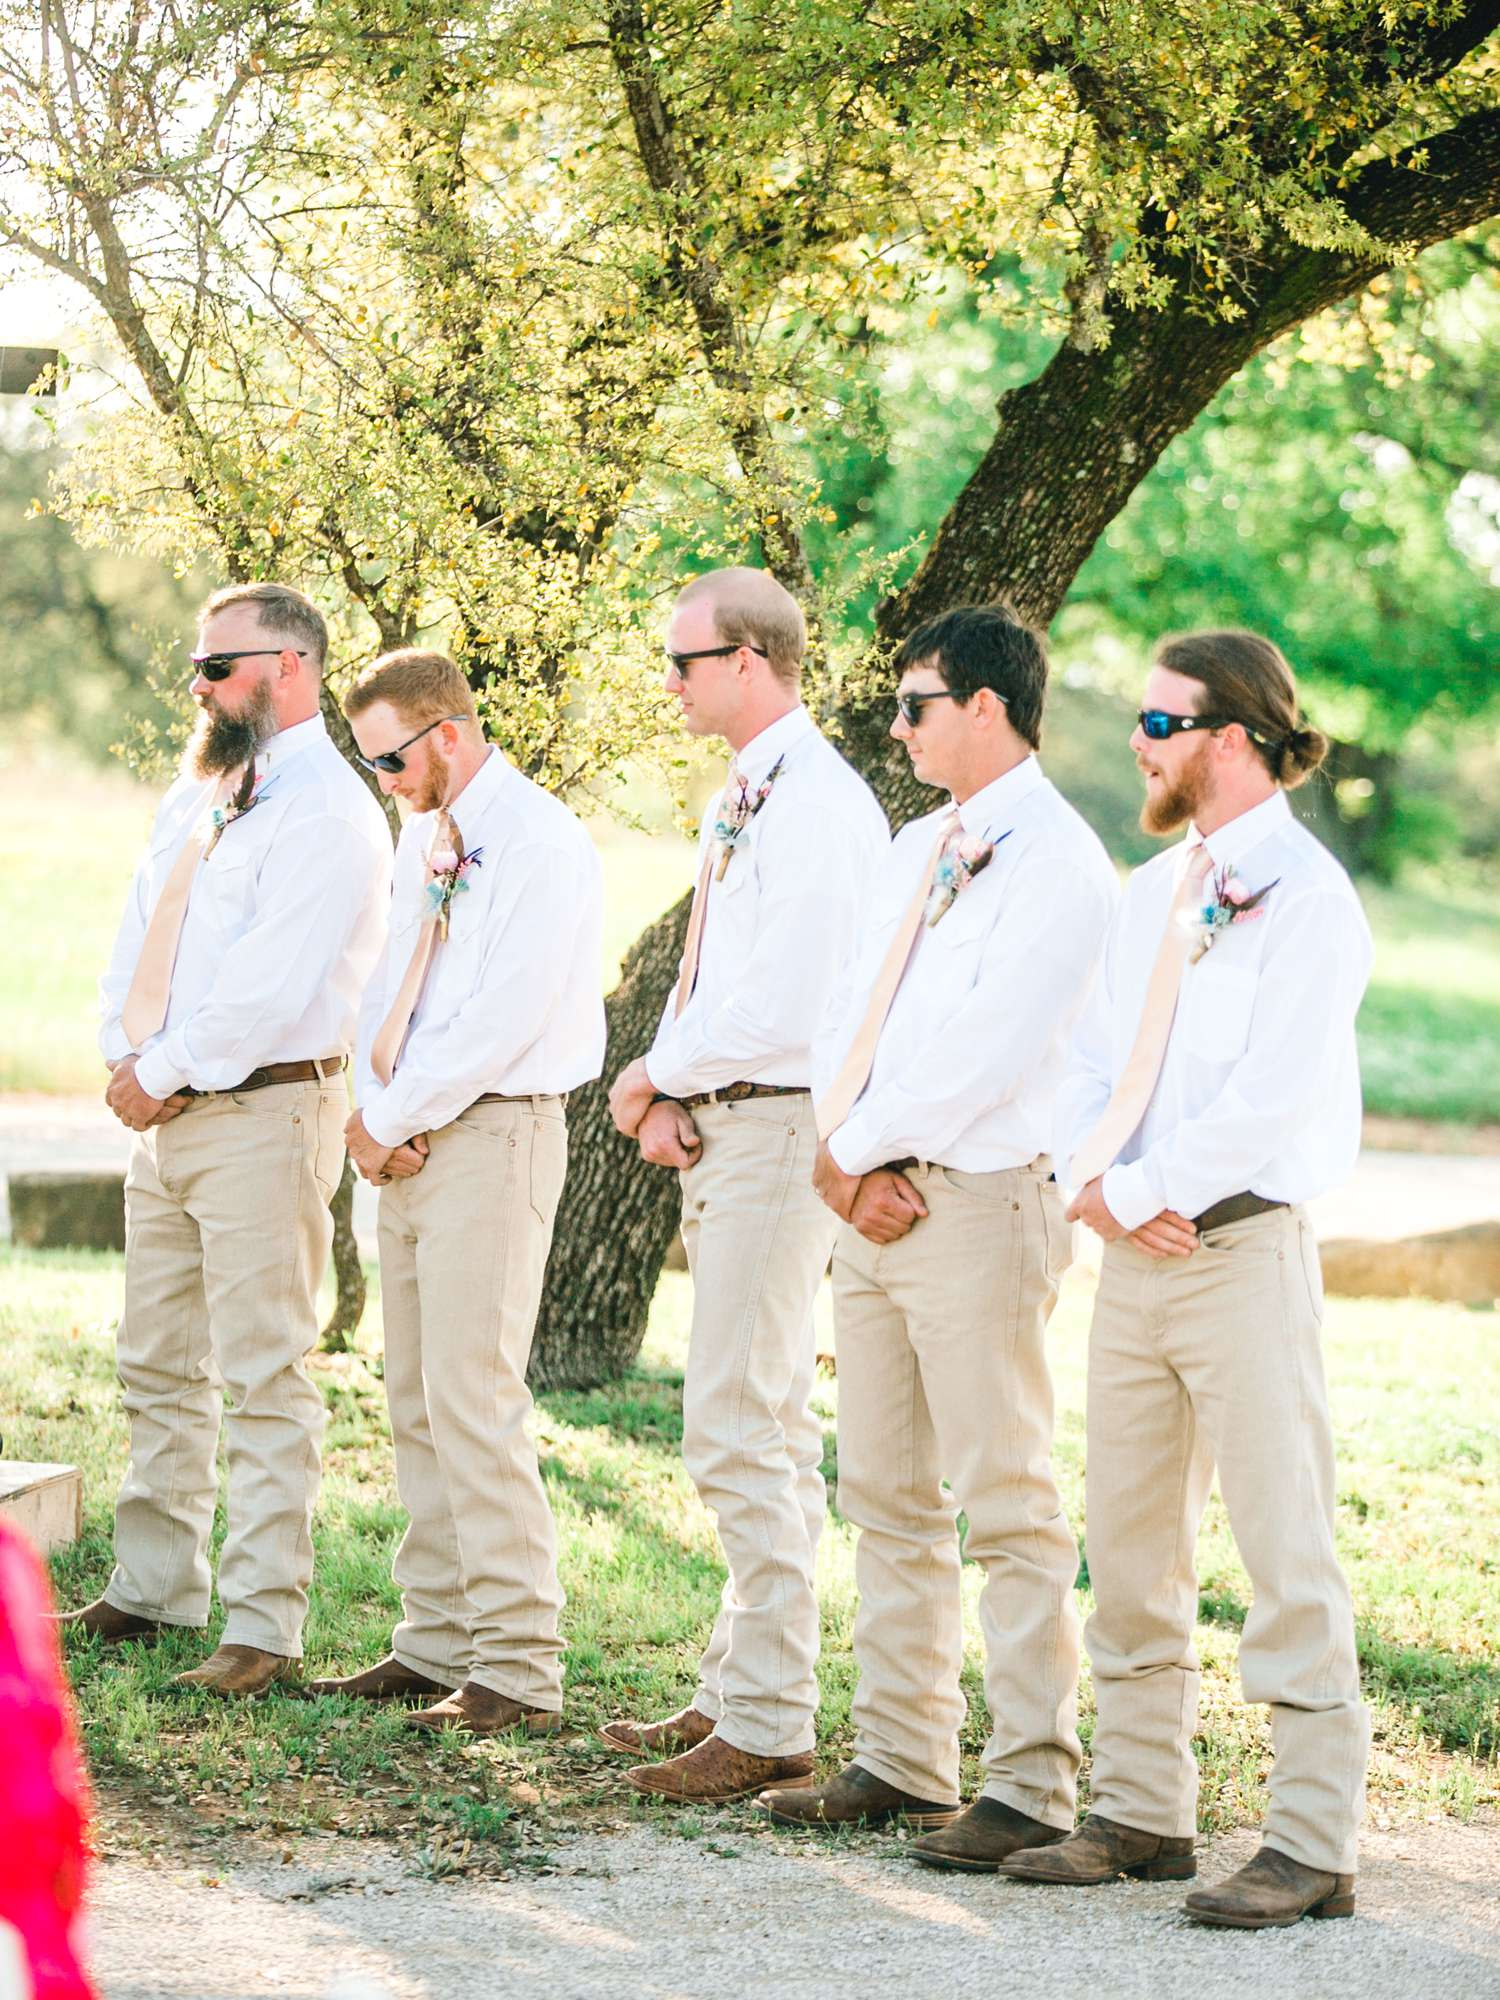 SARAH+TREVOR+BADGETT+SPARROW+CREEK+GRAHAM+TEXAS+ALLEEJ+WEDDINGS_0060.jpg